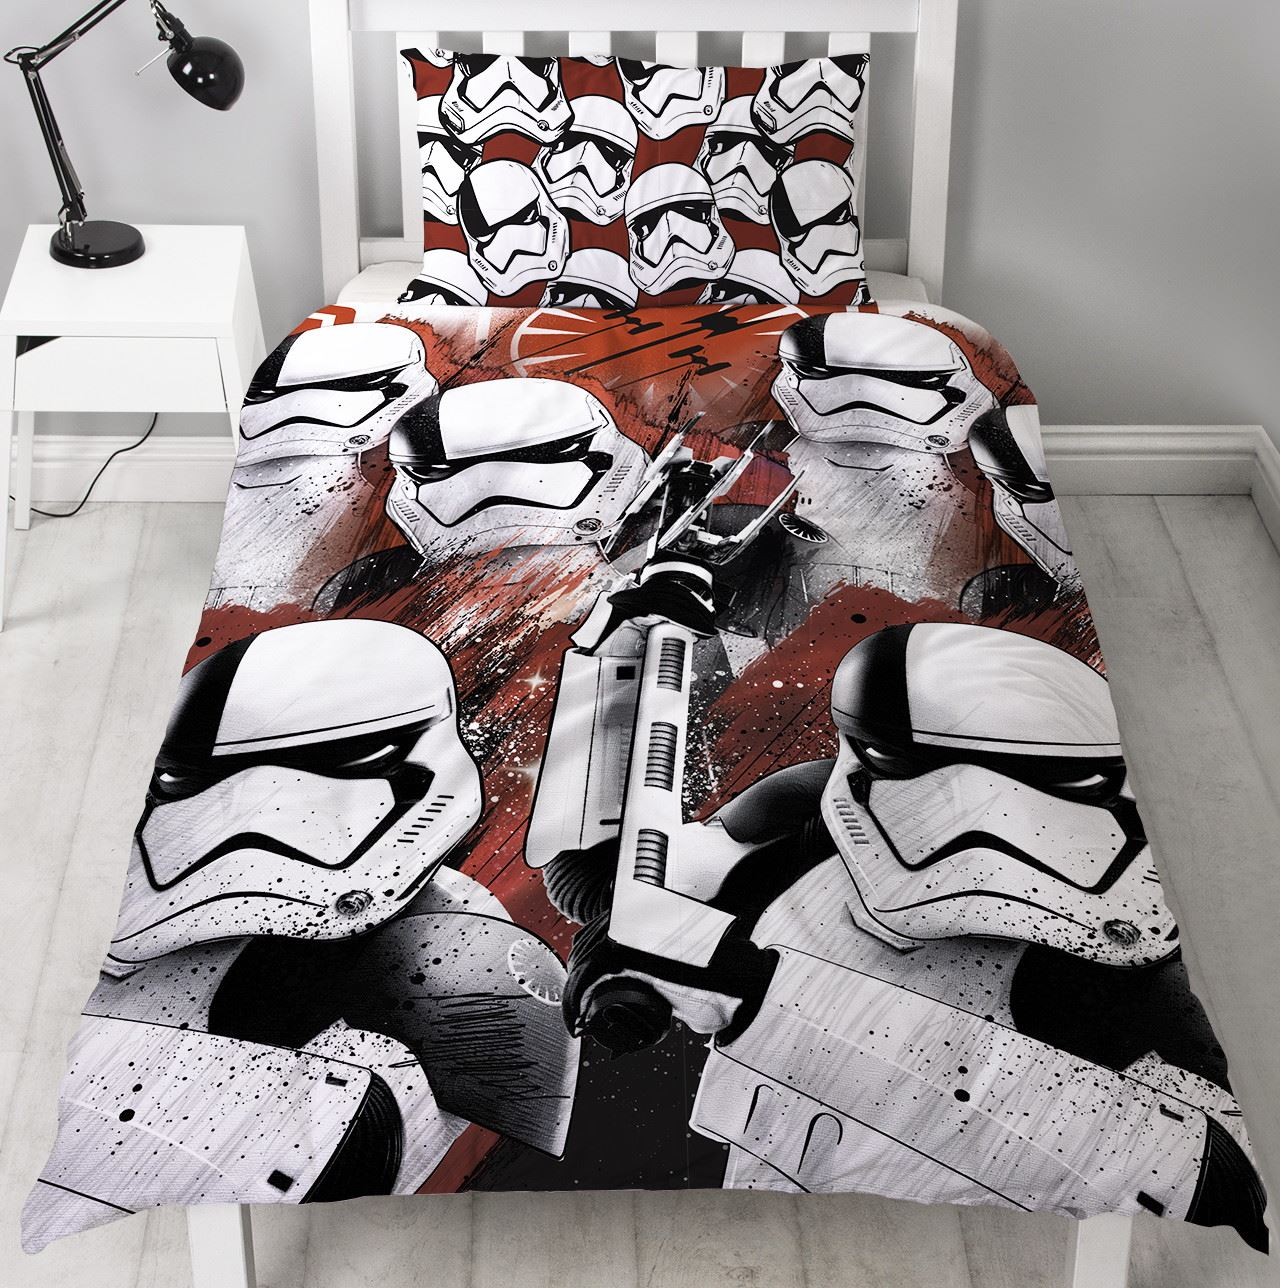 Official-Star-Wars-Licensed-Duvet-Covers-Single-Double-Jedi-Darth-Vader-Lego thumbnail 51